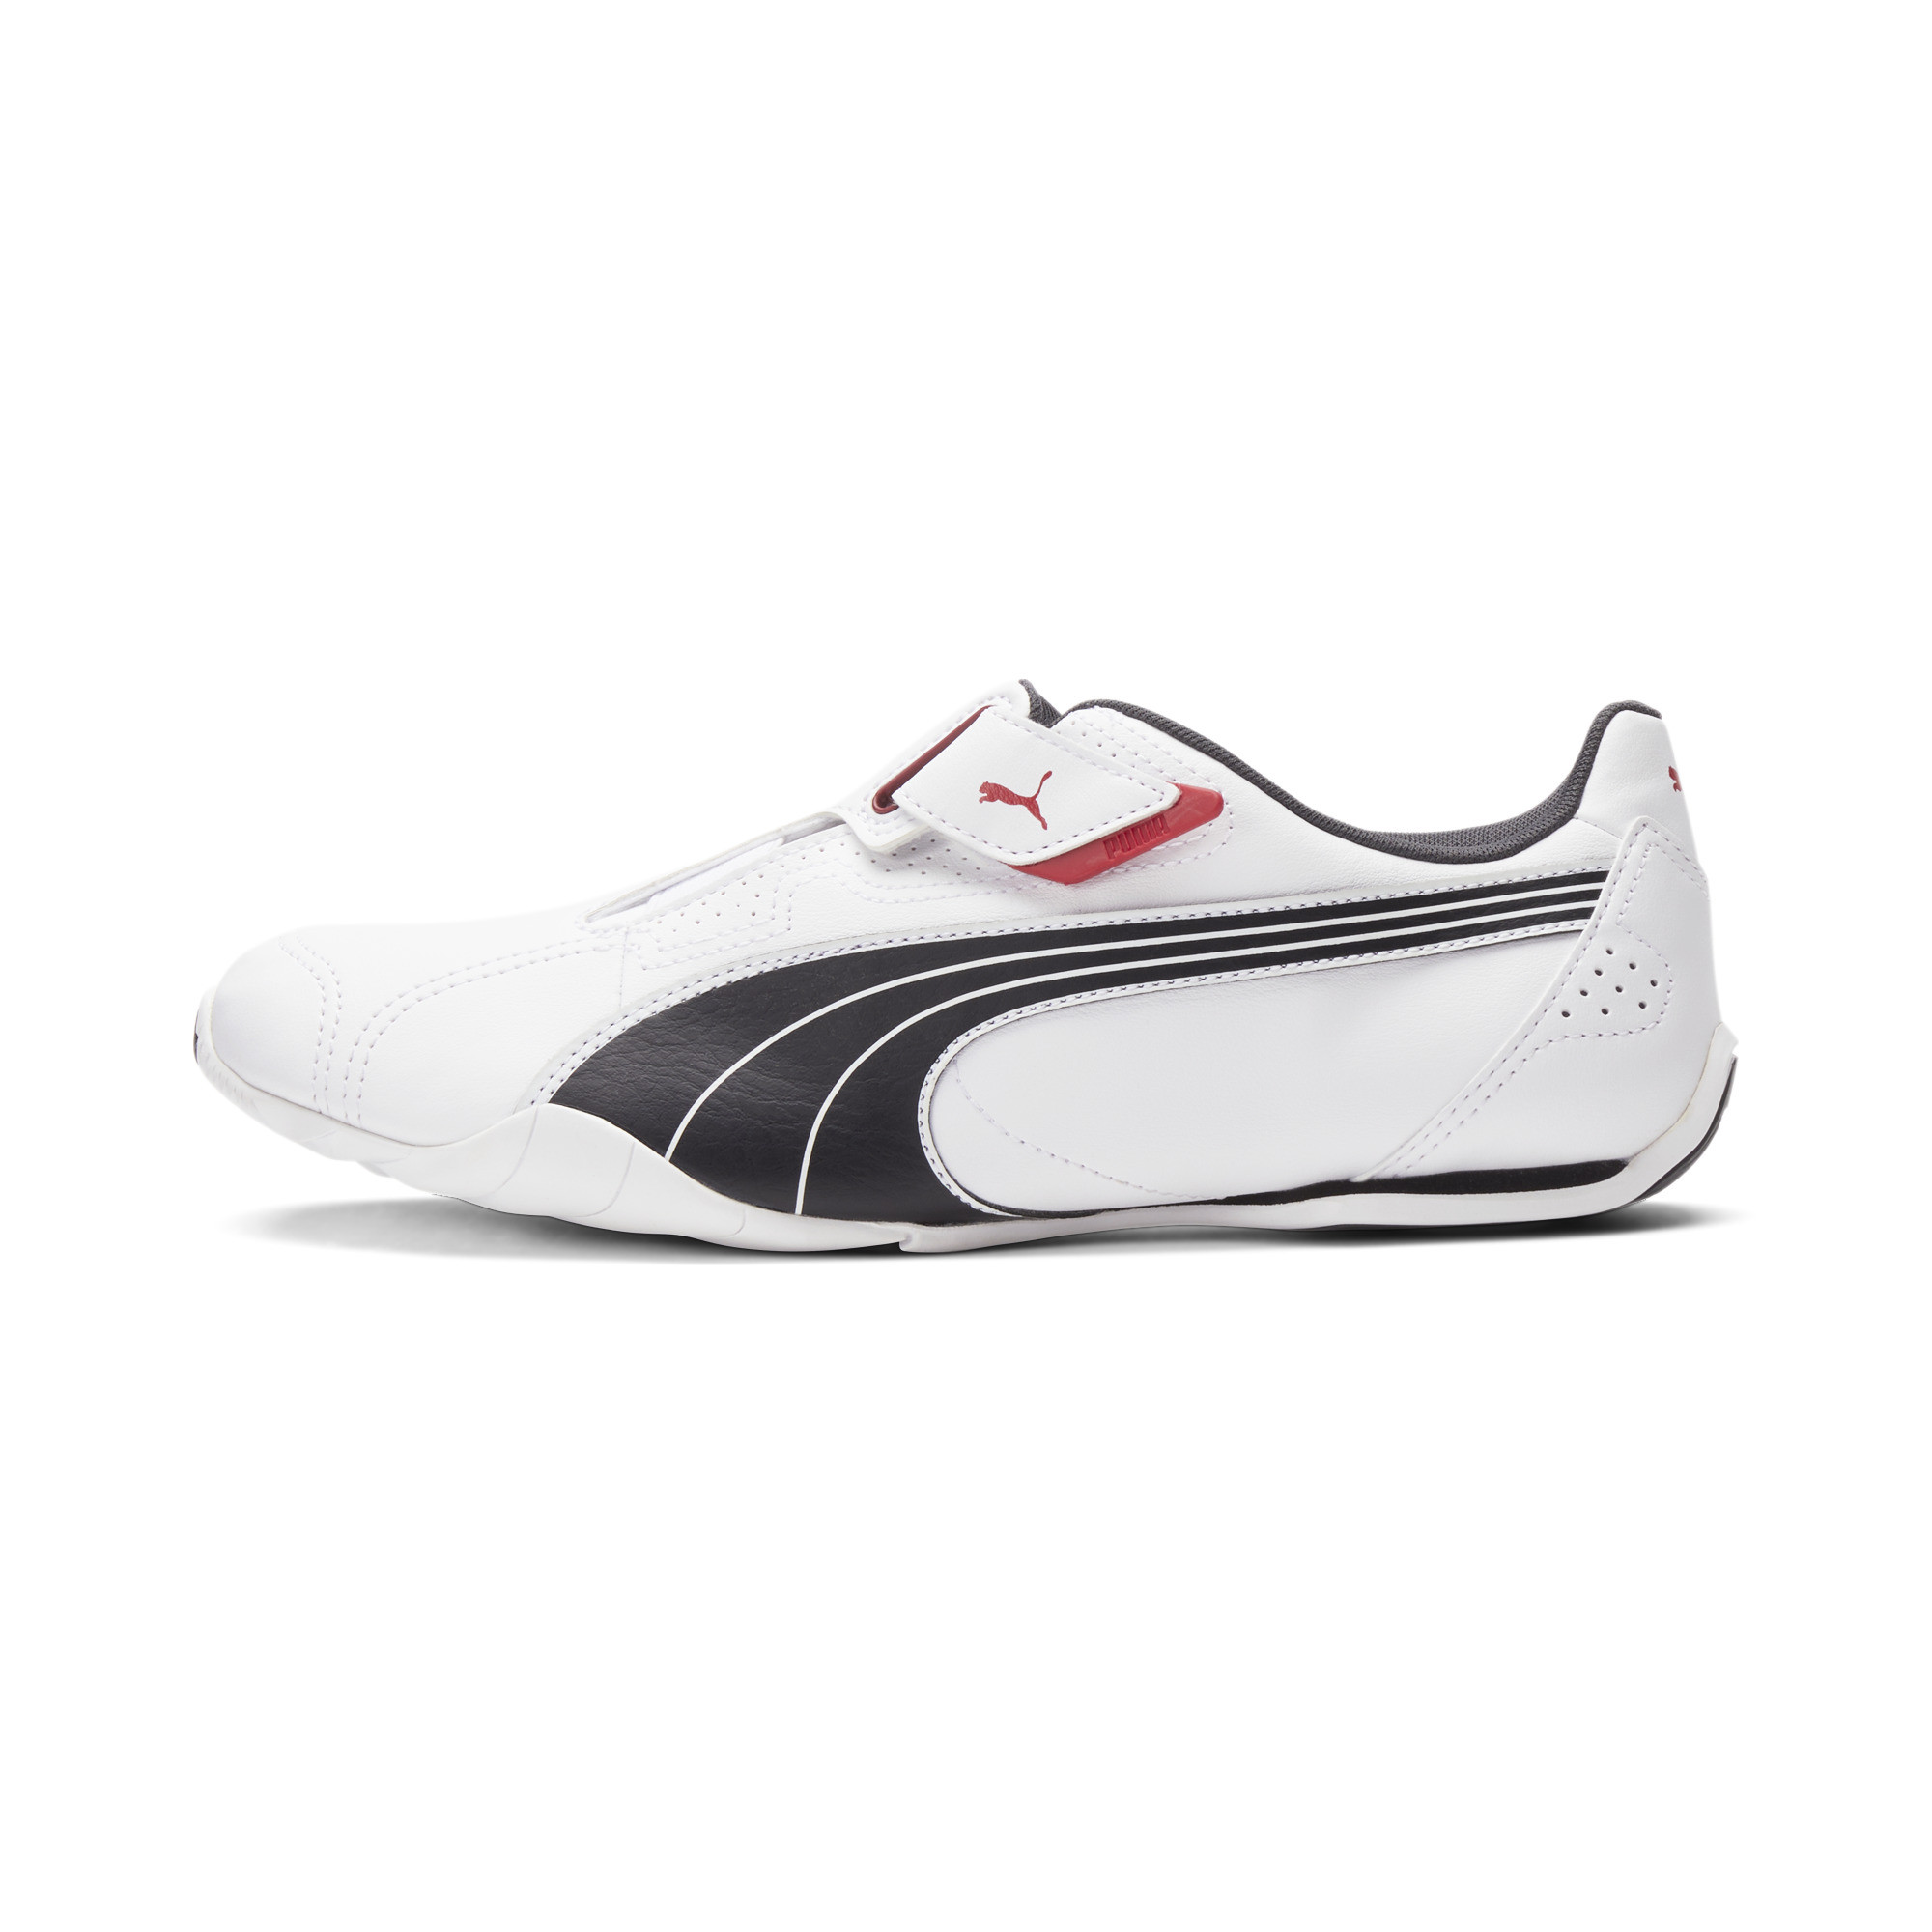 PUMA-Redon-Move-Men-039-s-Shoes-Men-Shoe-Sport-Shoe thumbnail 9